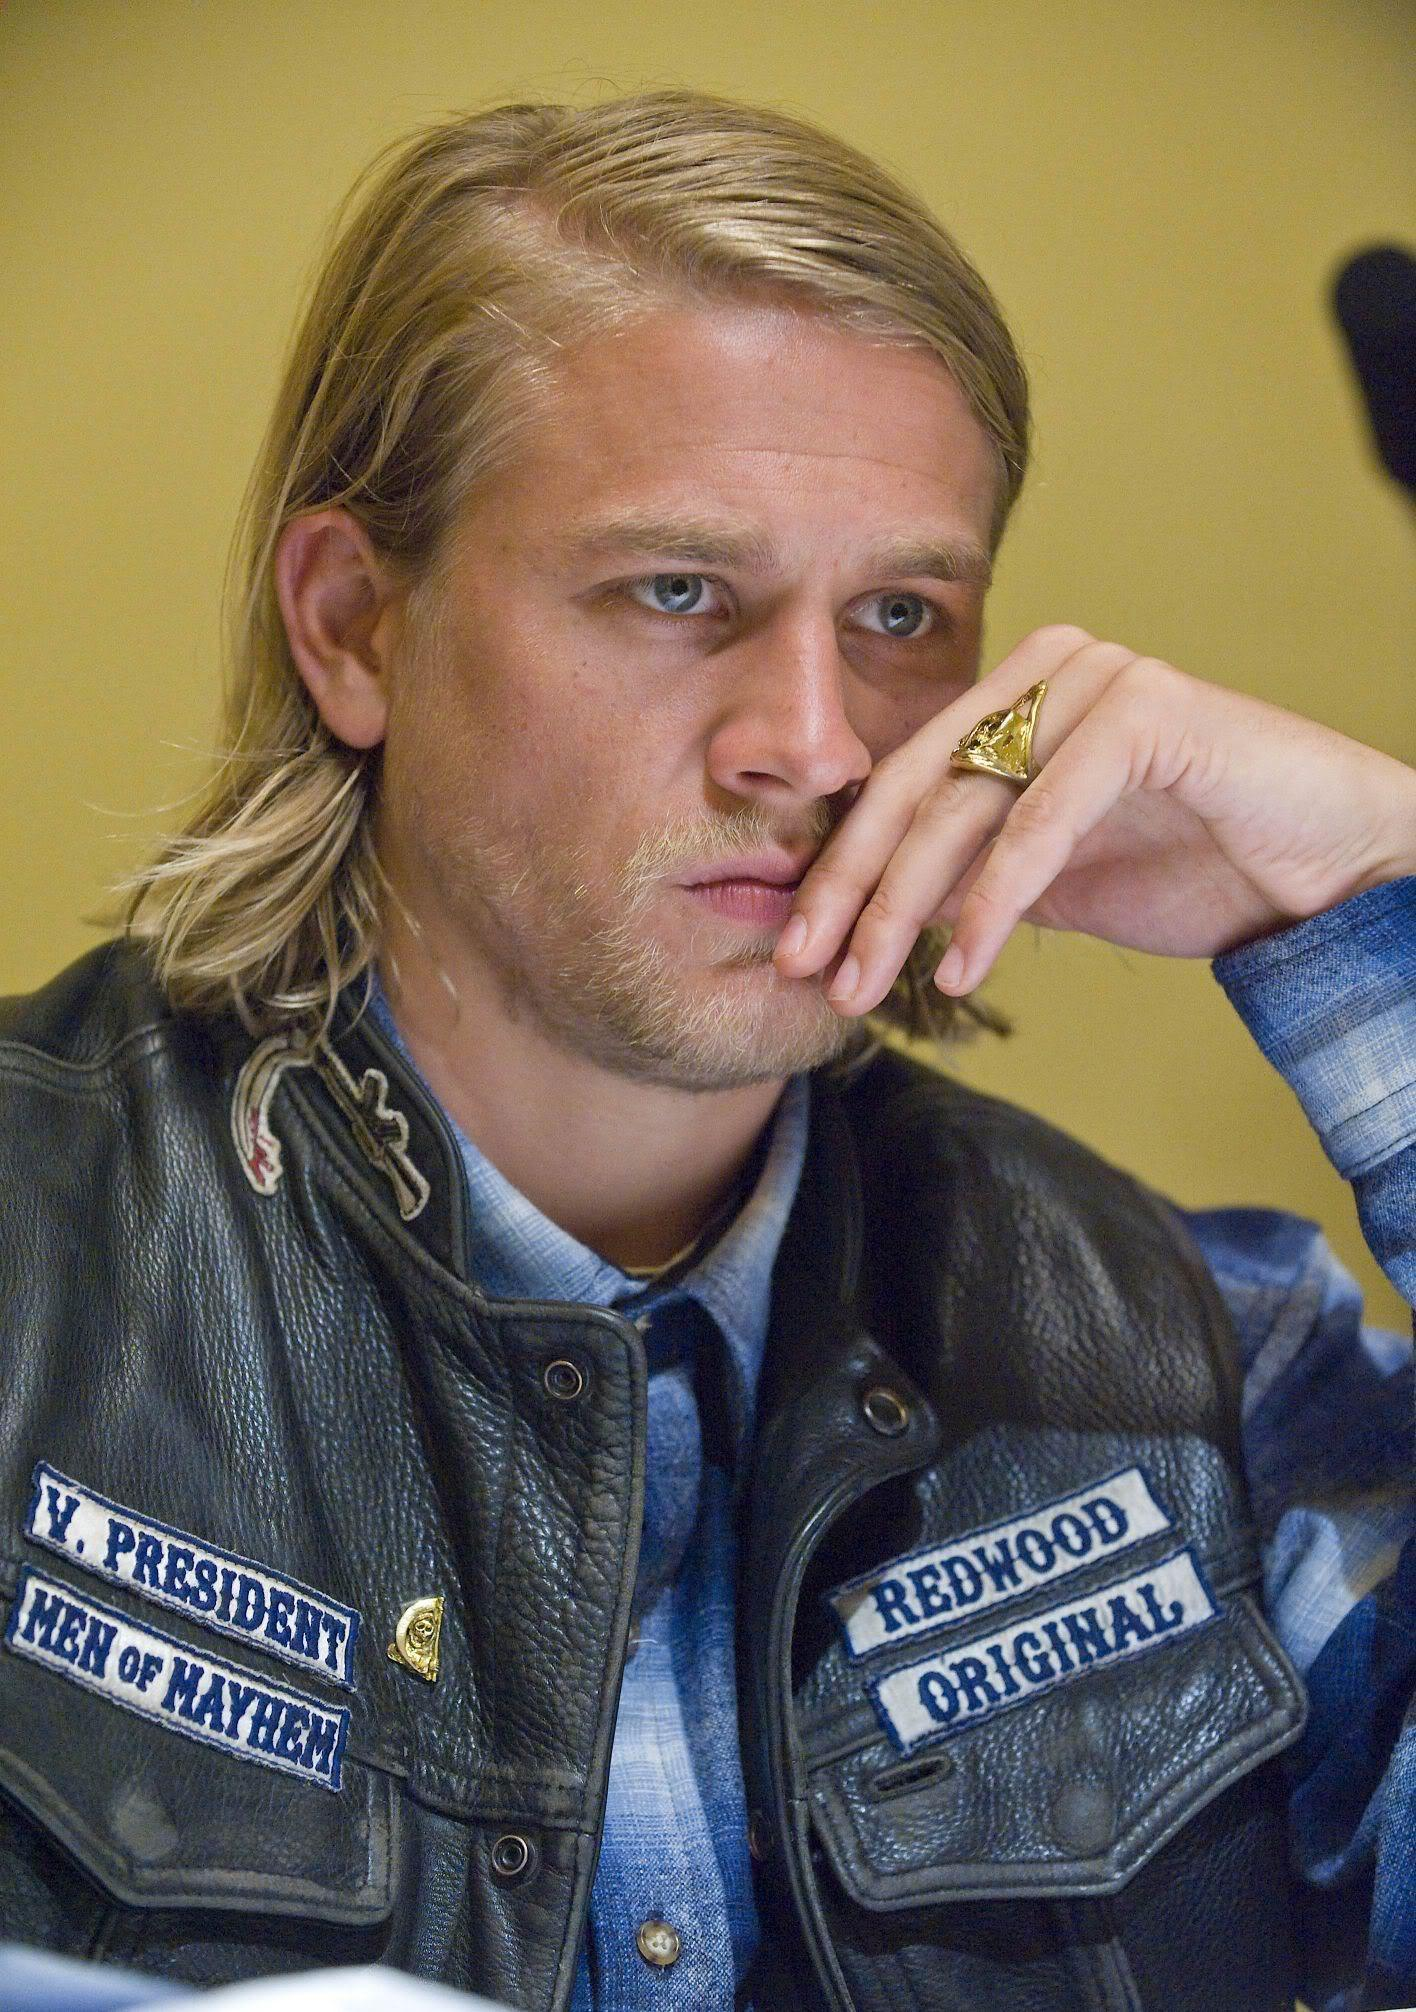 Sons of Anarchy Patches Jax Jax-teller-sons-of-anarchy